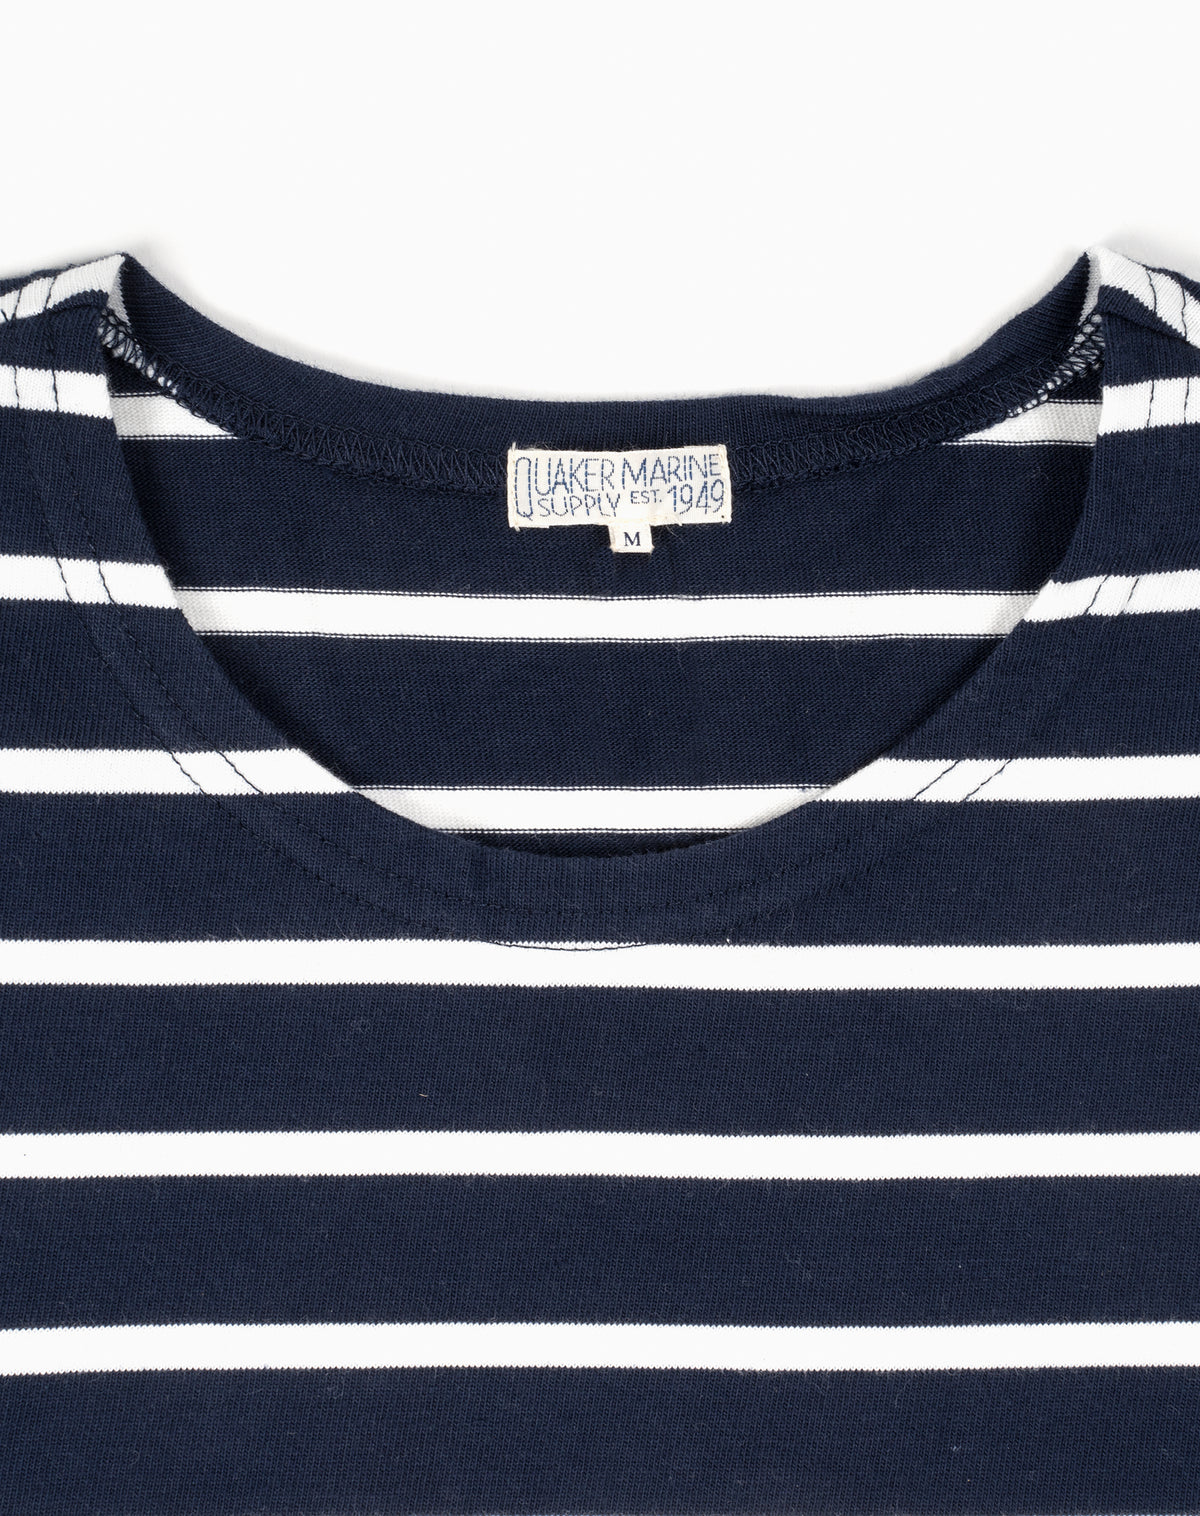 French Sailor in Navy w/ White Stripes